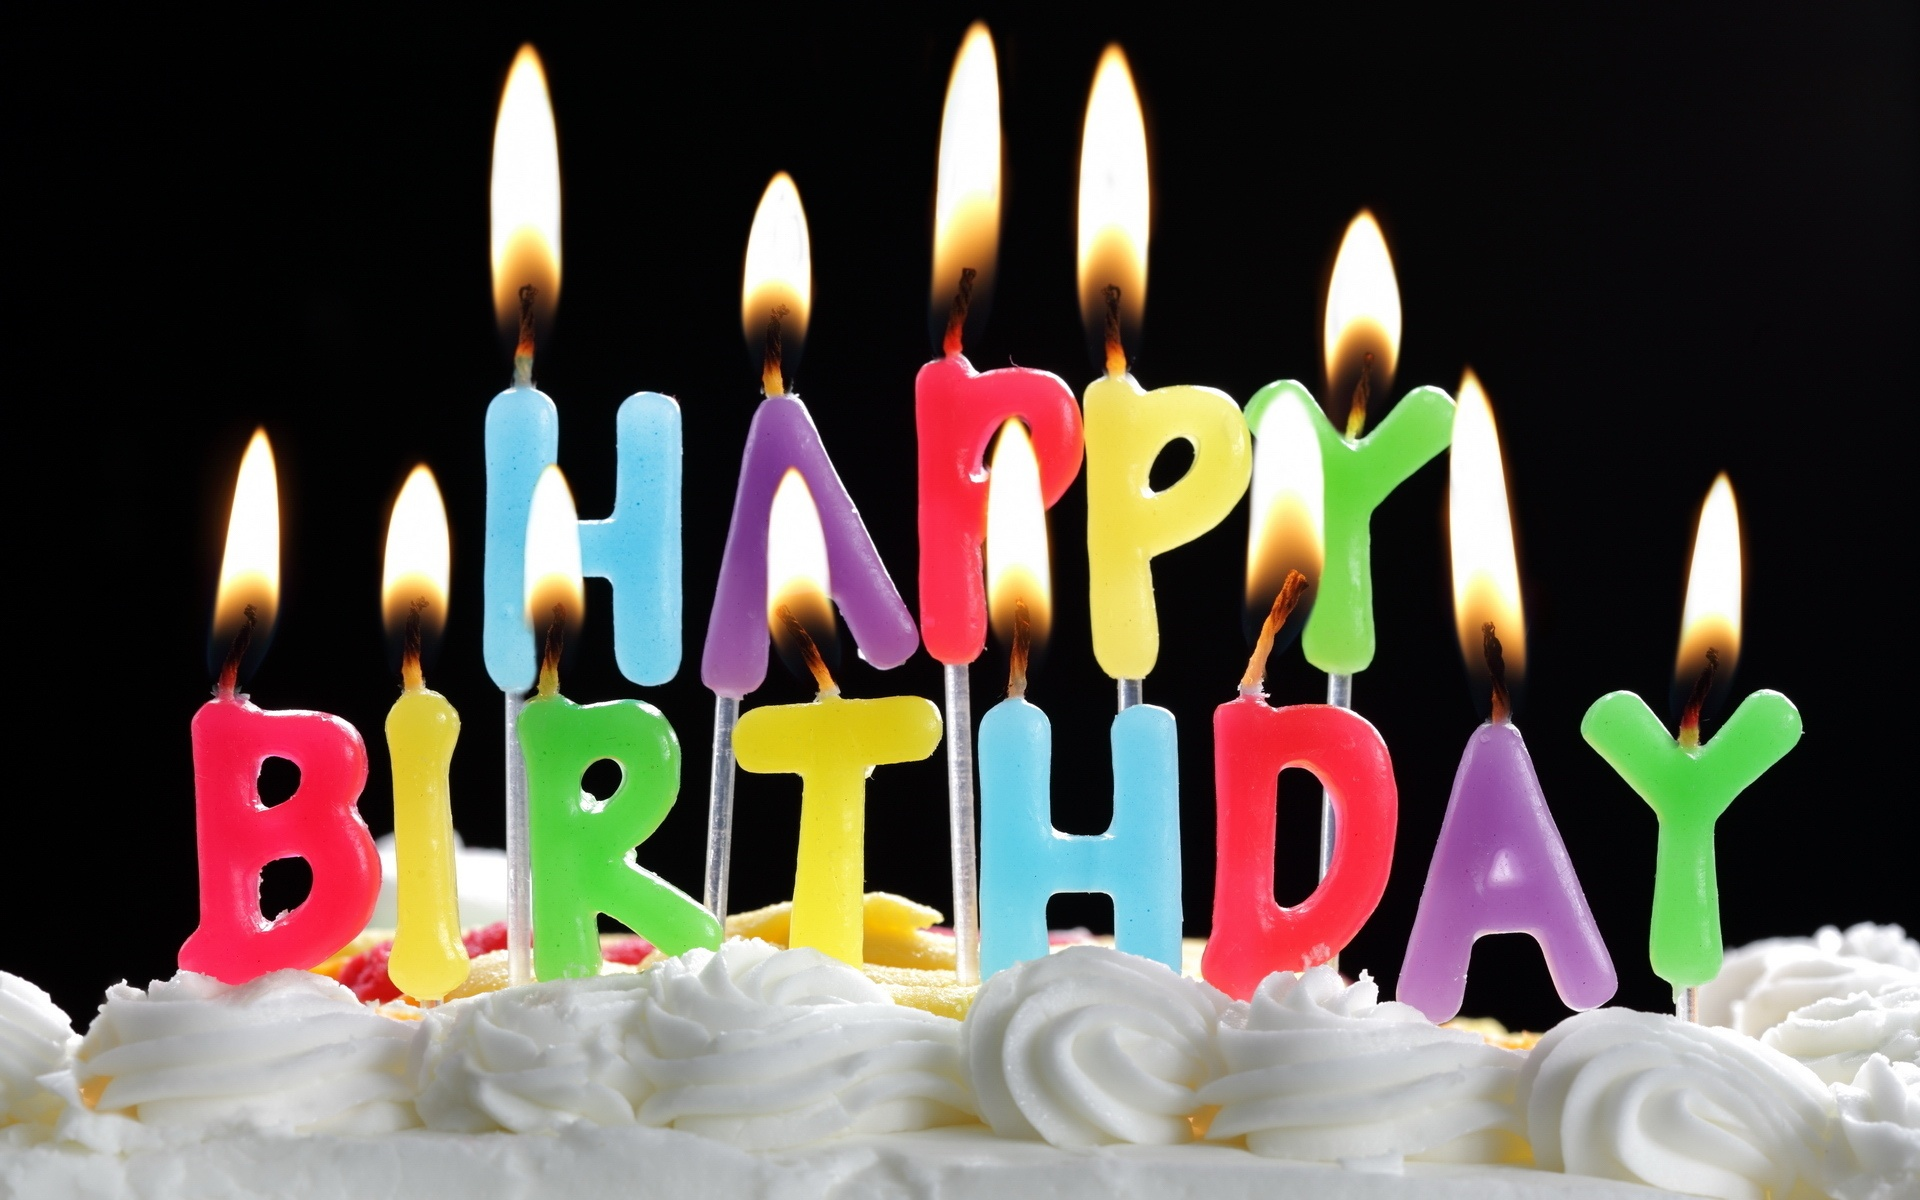 Wallpaper Happy Birthday Cake And Candles 1920x1200 Hd